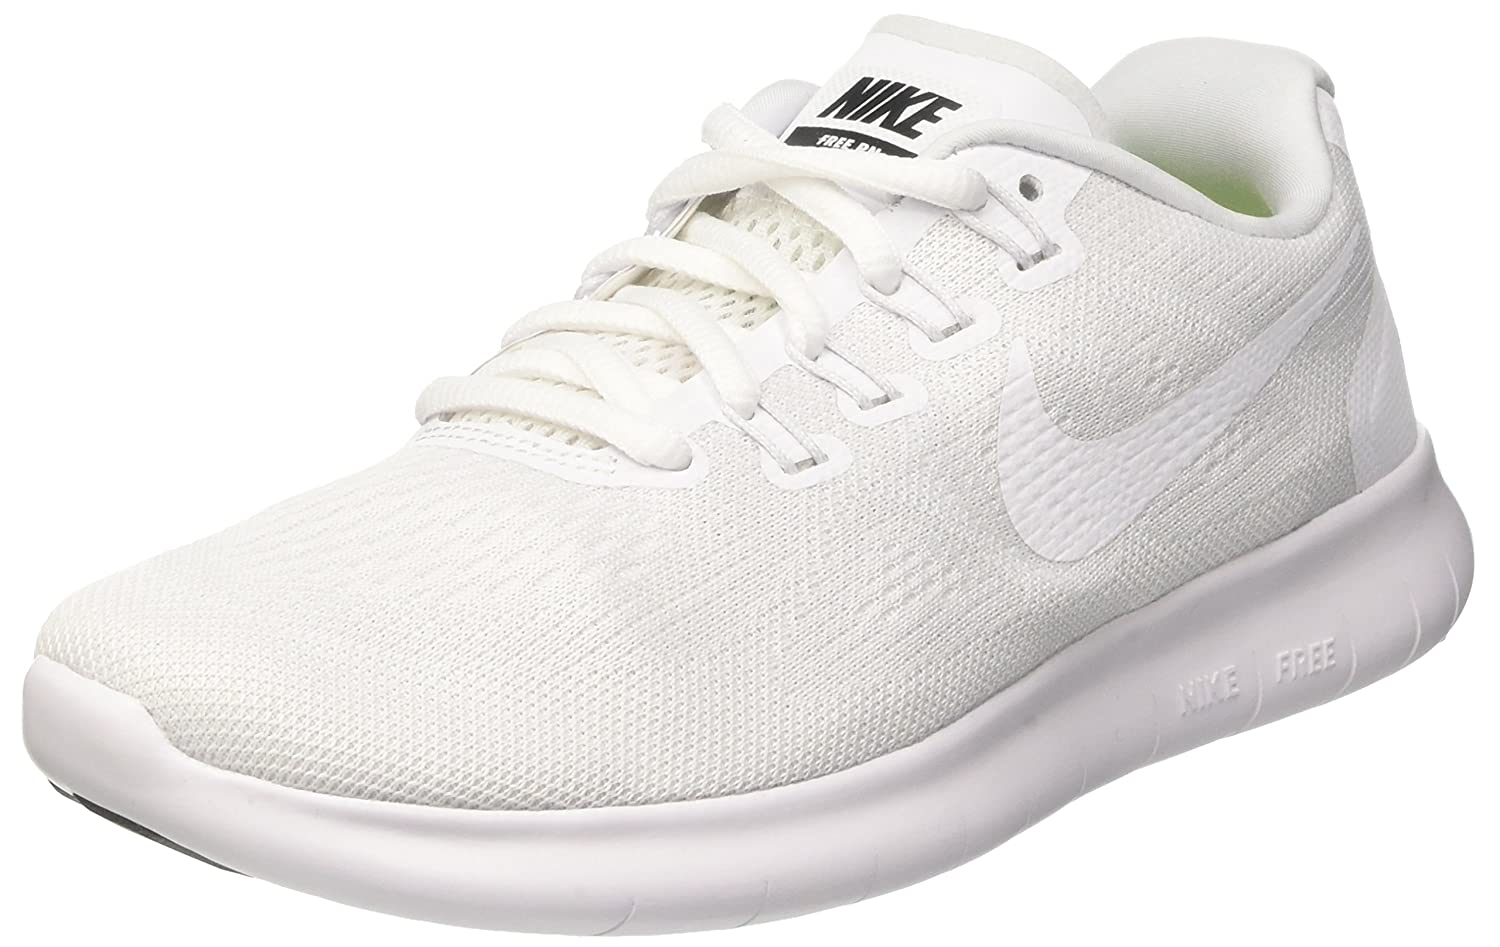 hot sale online 24085 28b5d ... pure platinum negro aogn339f1icu 4682c baef3  top quality nike mujer free  rn 2017 2017 zapatillas de running para mujer b017sqwwcm blanco white